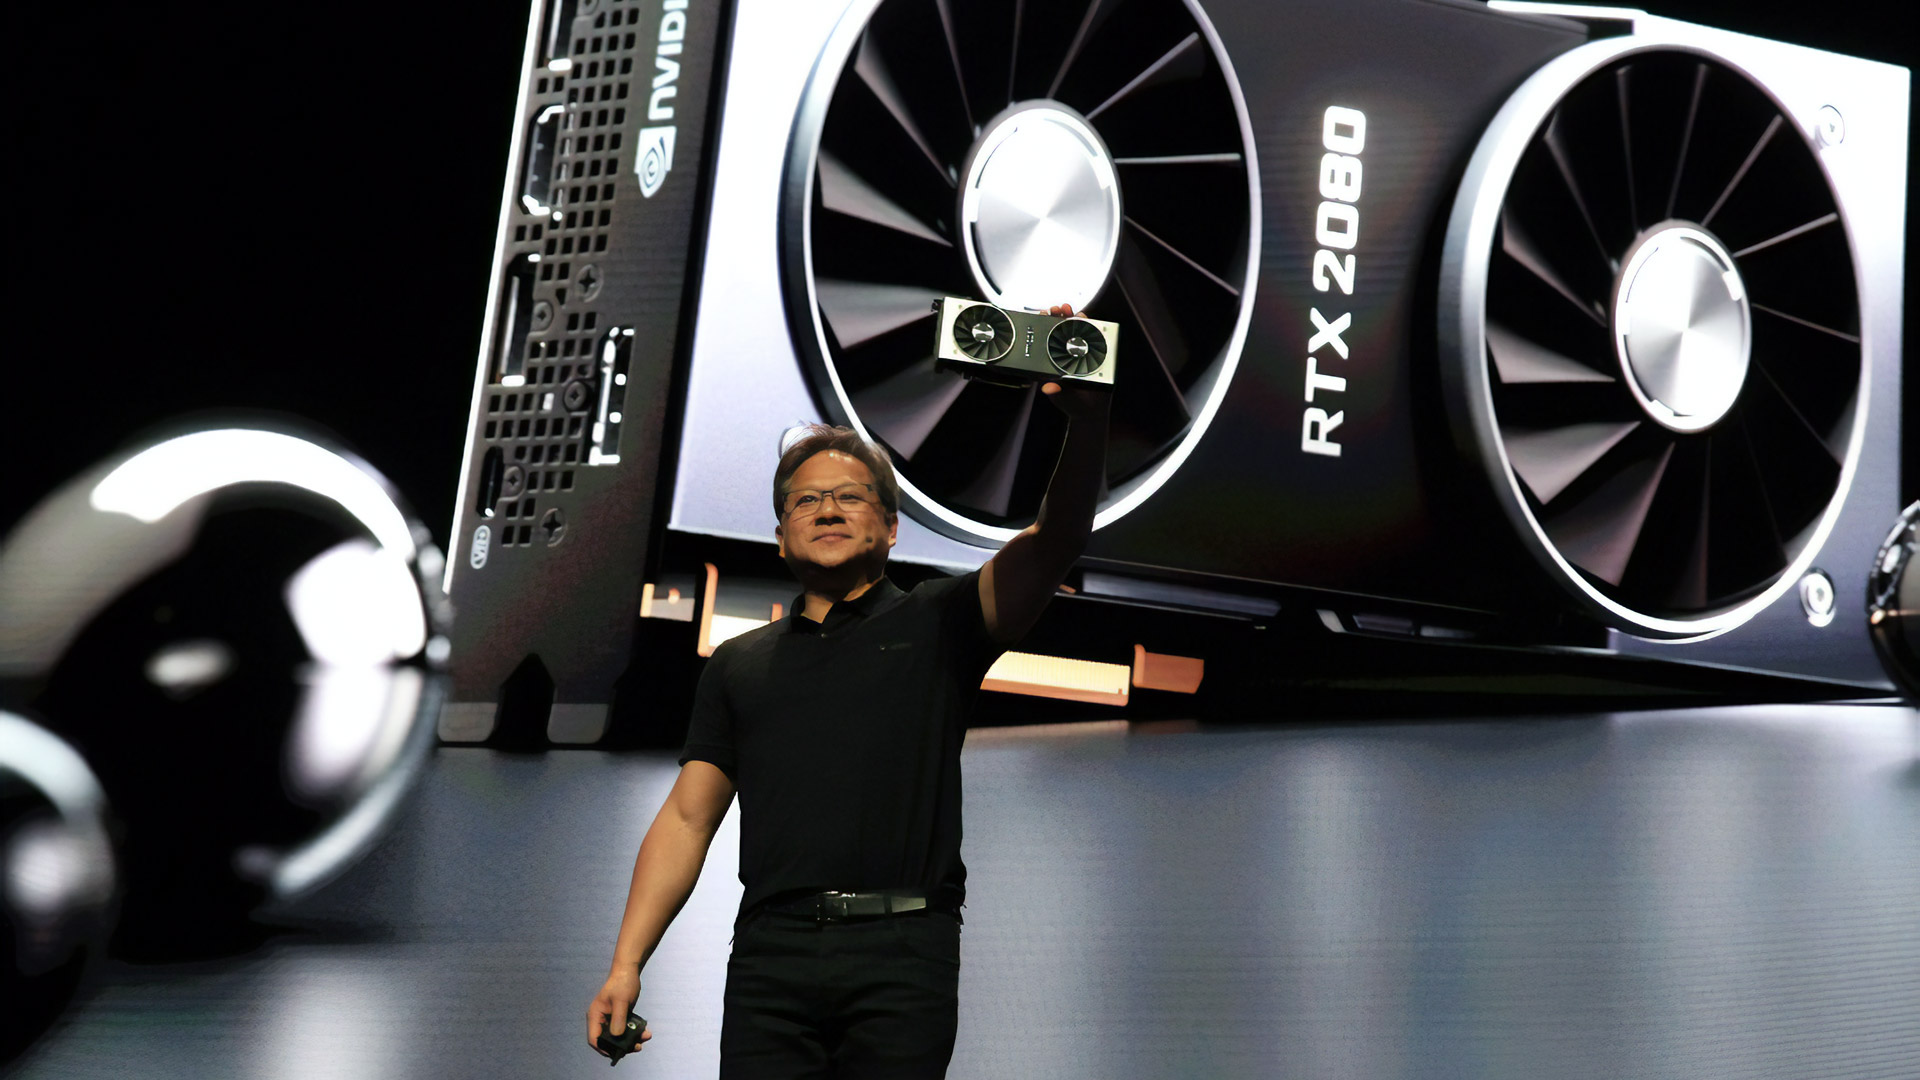 Why you shouldn't buy an Nvidia GeForce RTX graphics card—yet